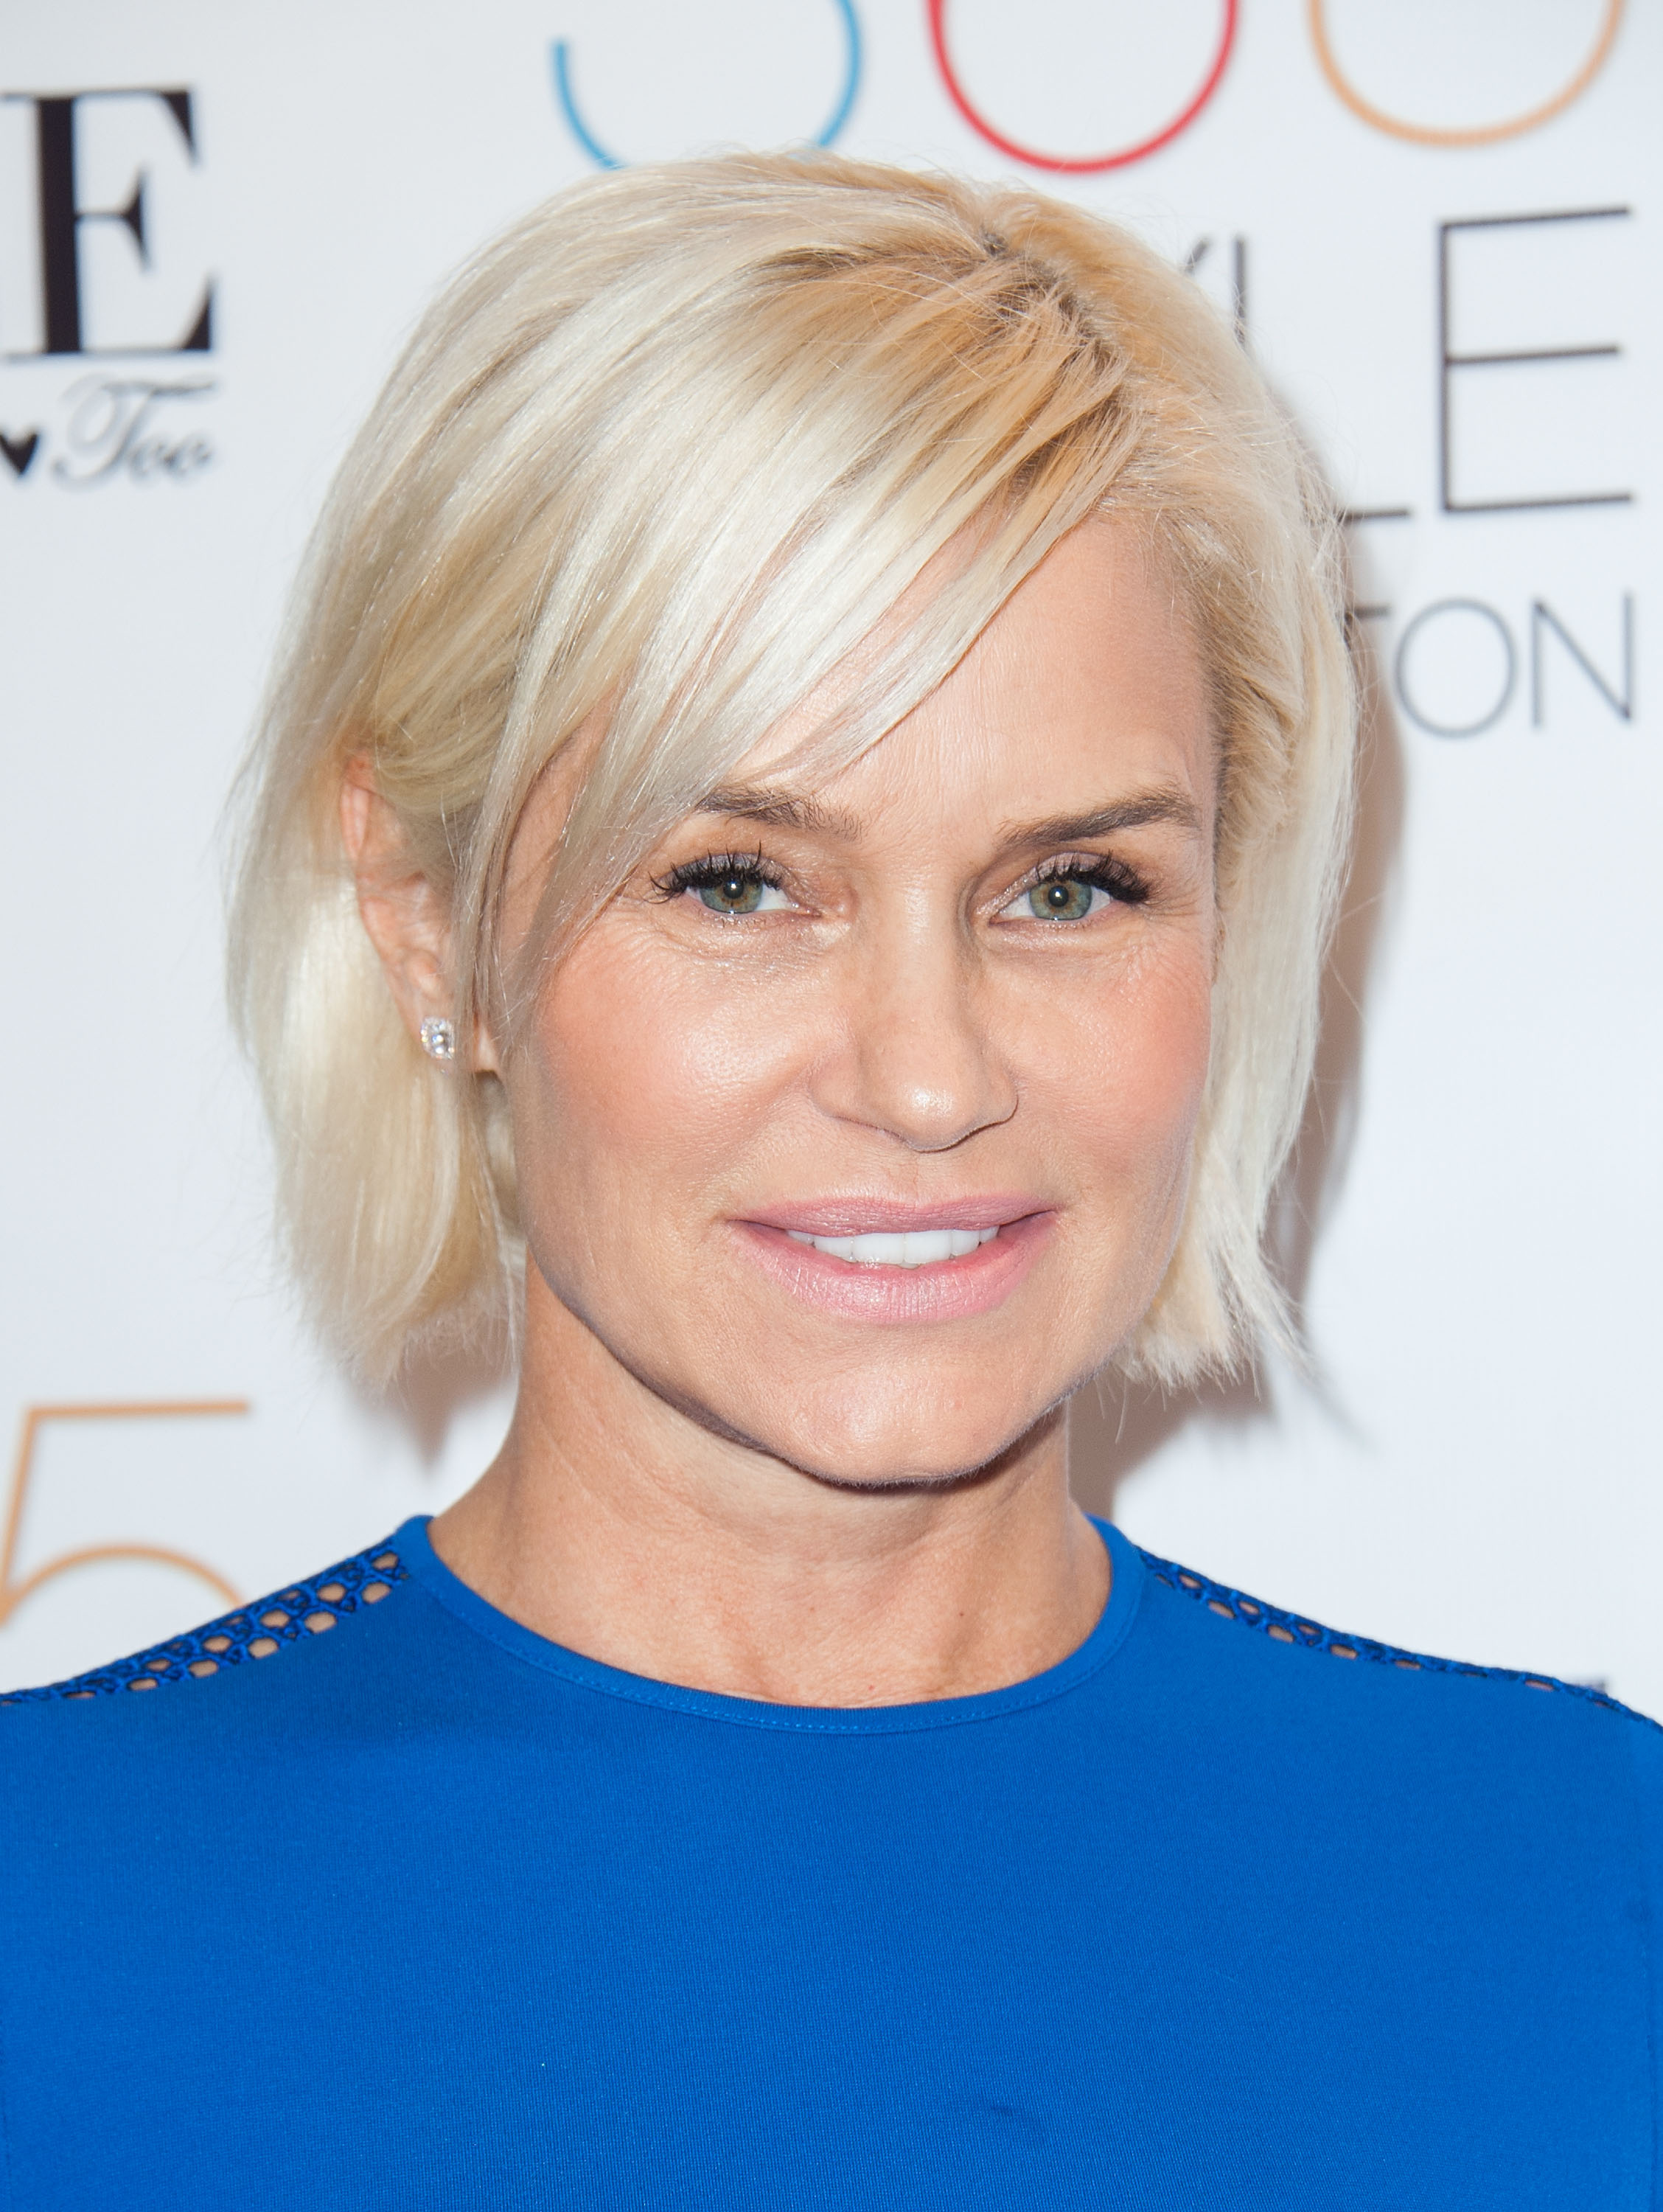 11 reasons yolanda foster is the most grown-ass woman on 'real